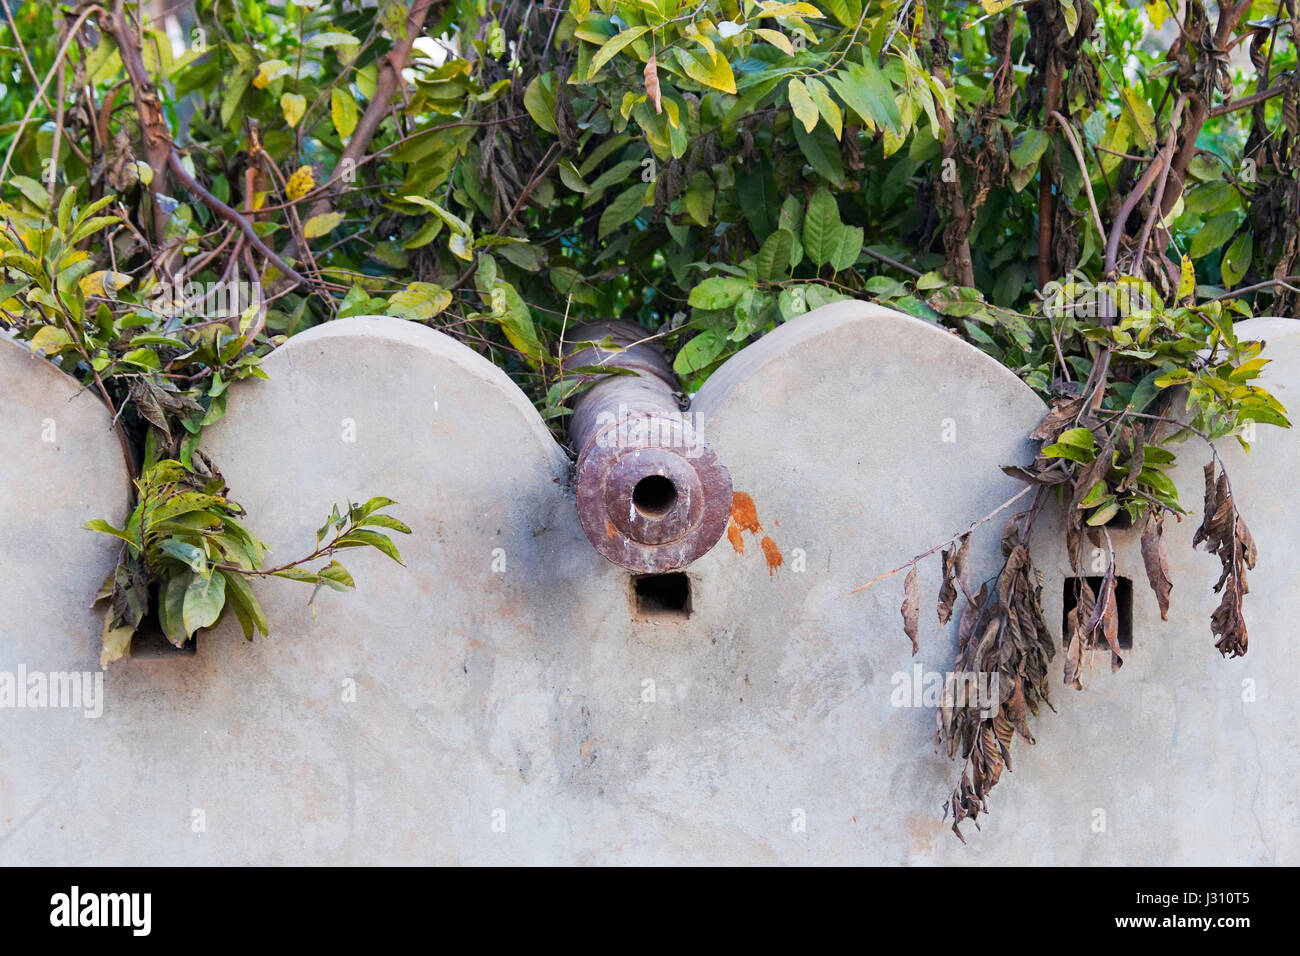 The barrel of an ancient cannon rests on top of a concrete wall surrounded by foliage. - Stock Image